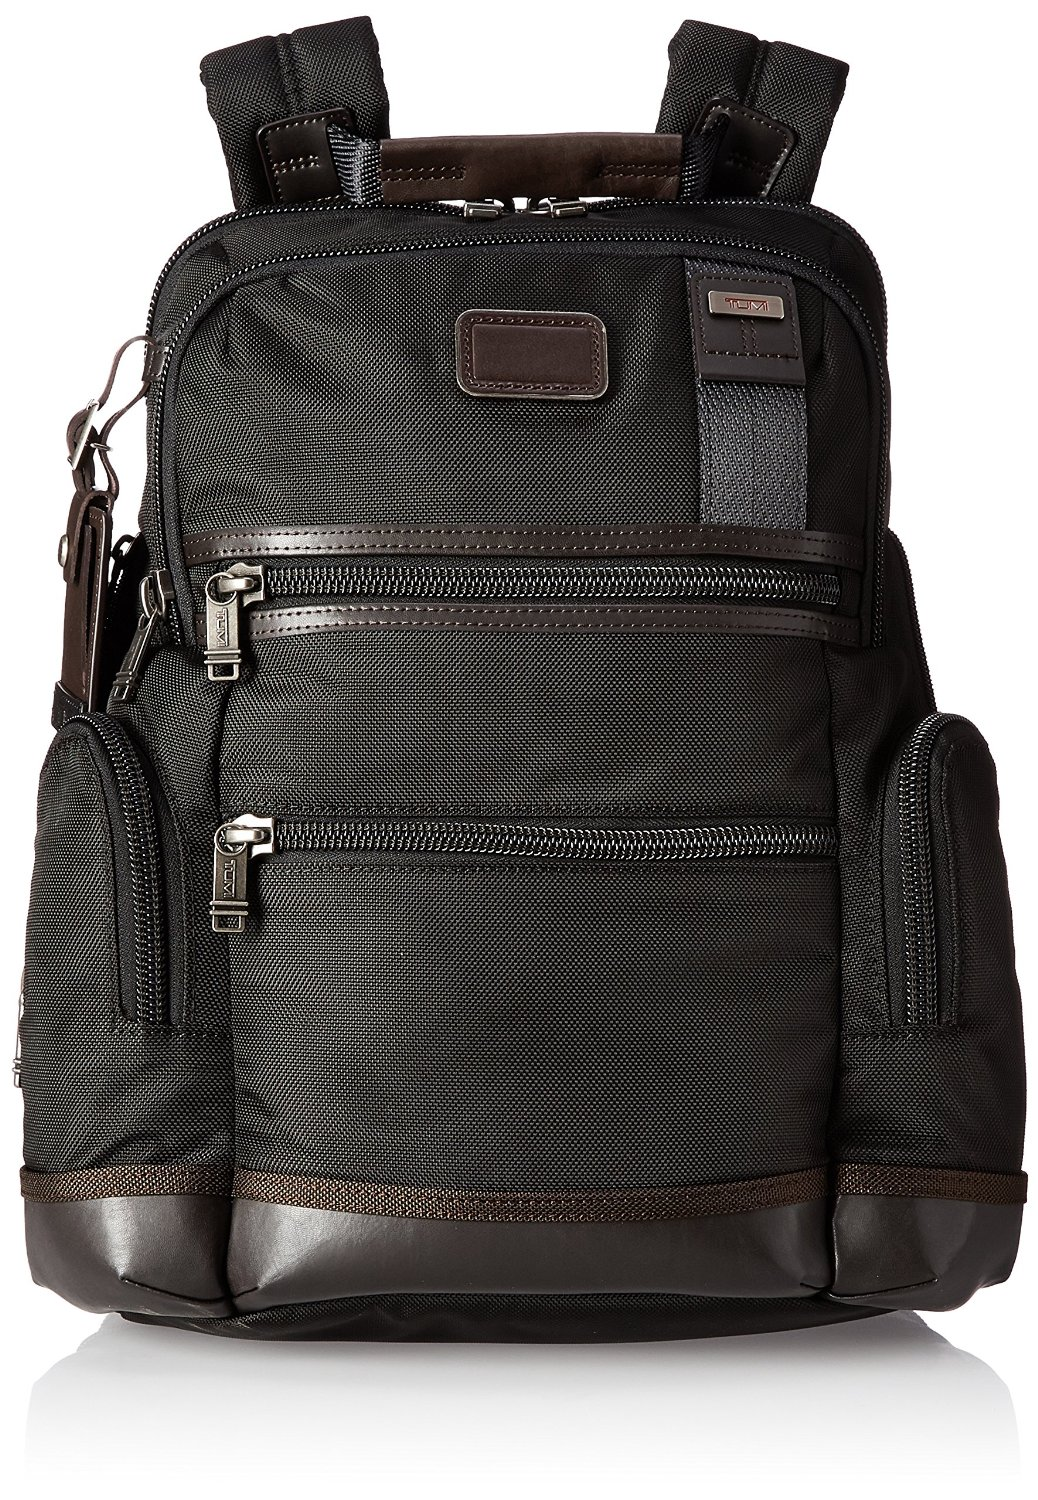 33 luxury backpacks